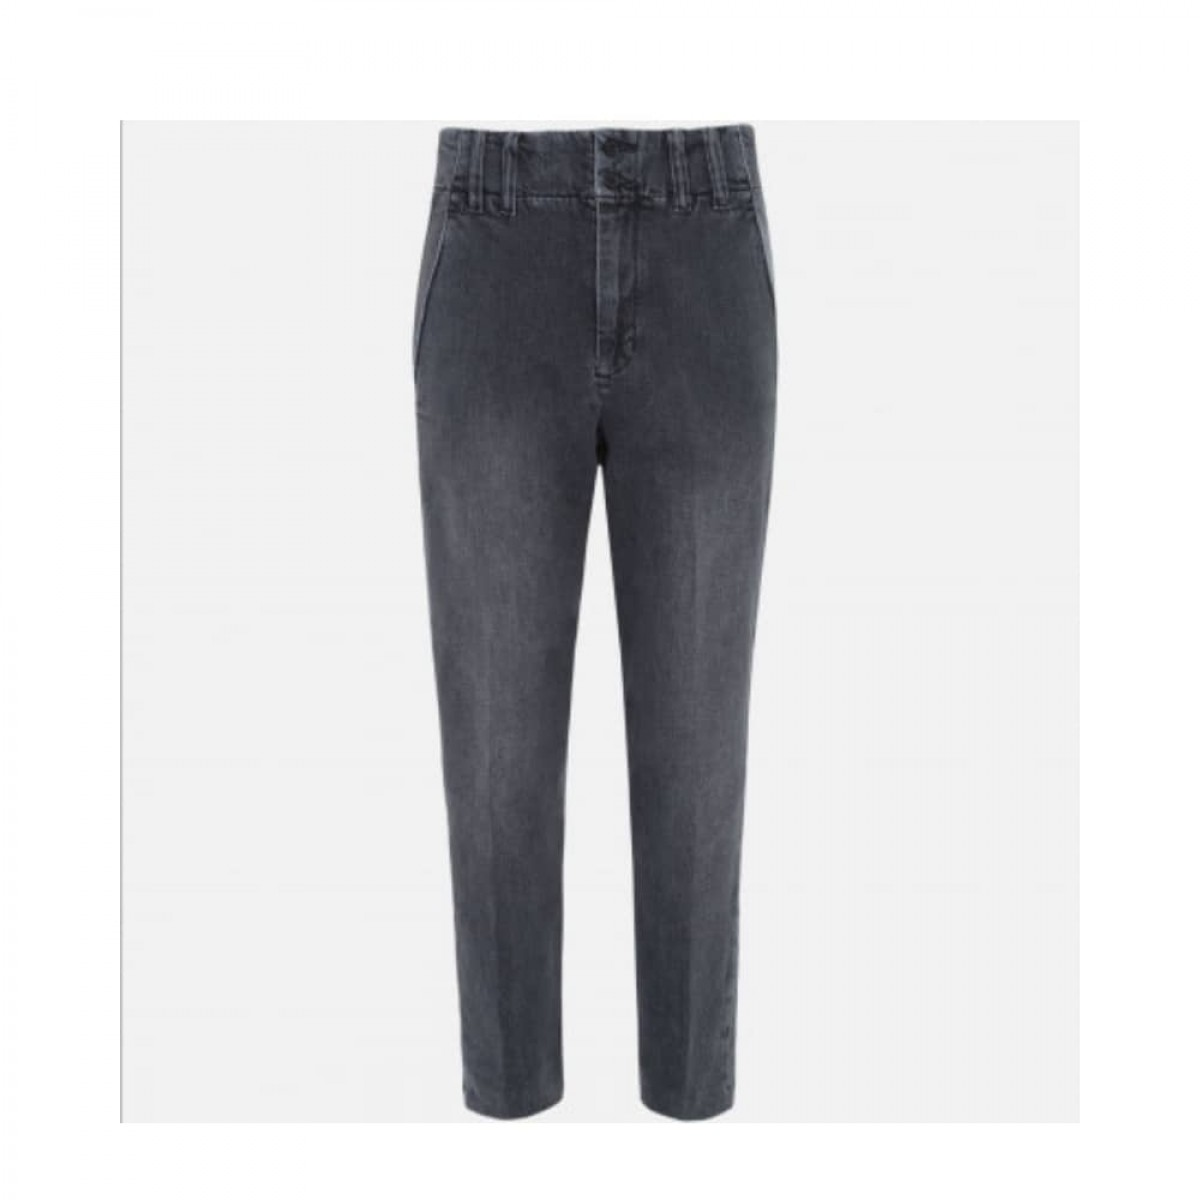 lenny jeans - grey - front